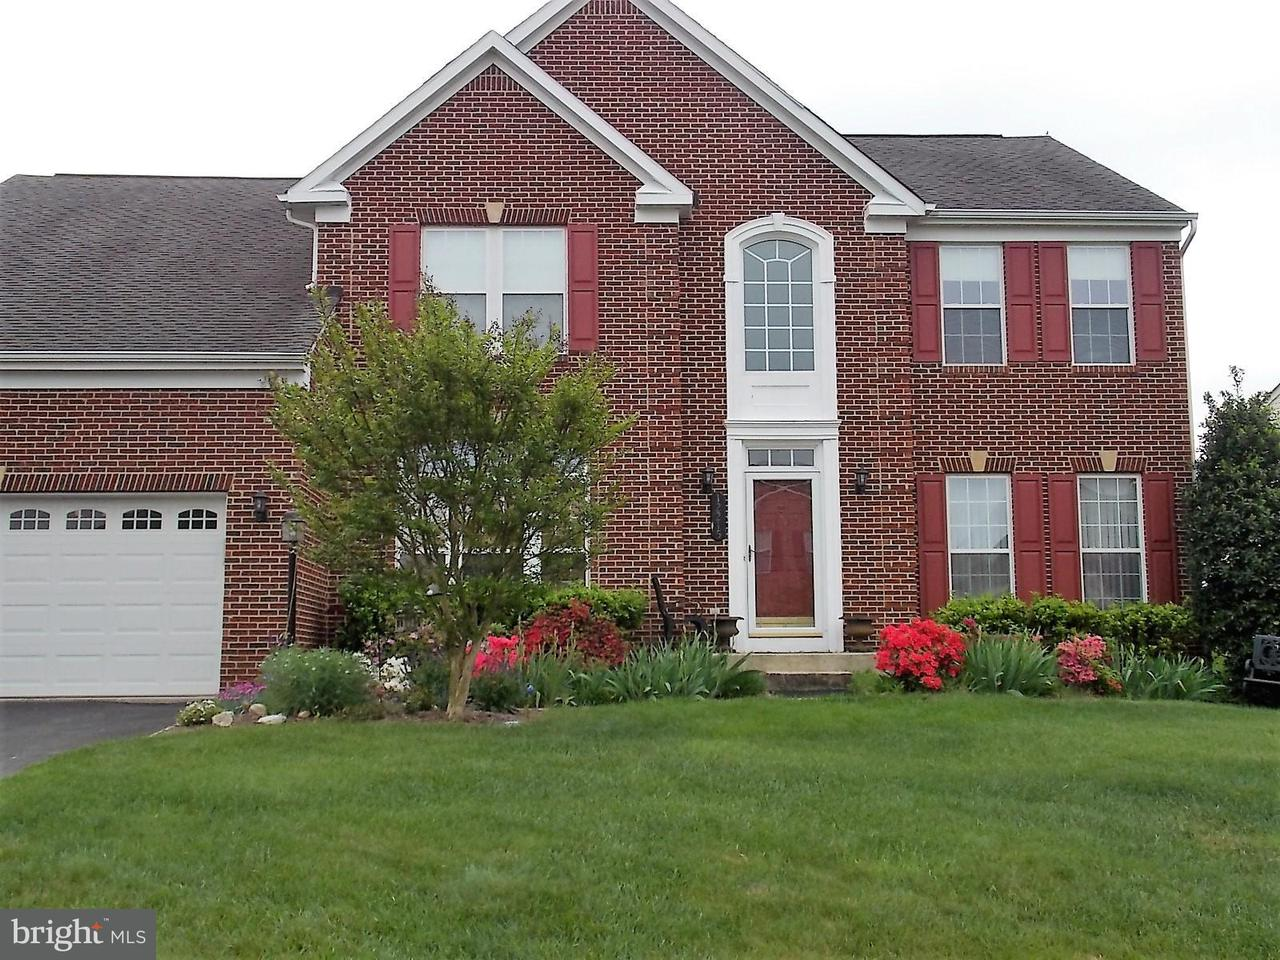 Single Family Home for Sale at 12215 TORREY PINES TER 12215 TORREY PINES TER Beltsville, Maryland 20705 United States